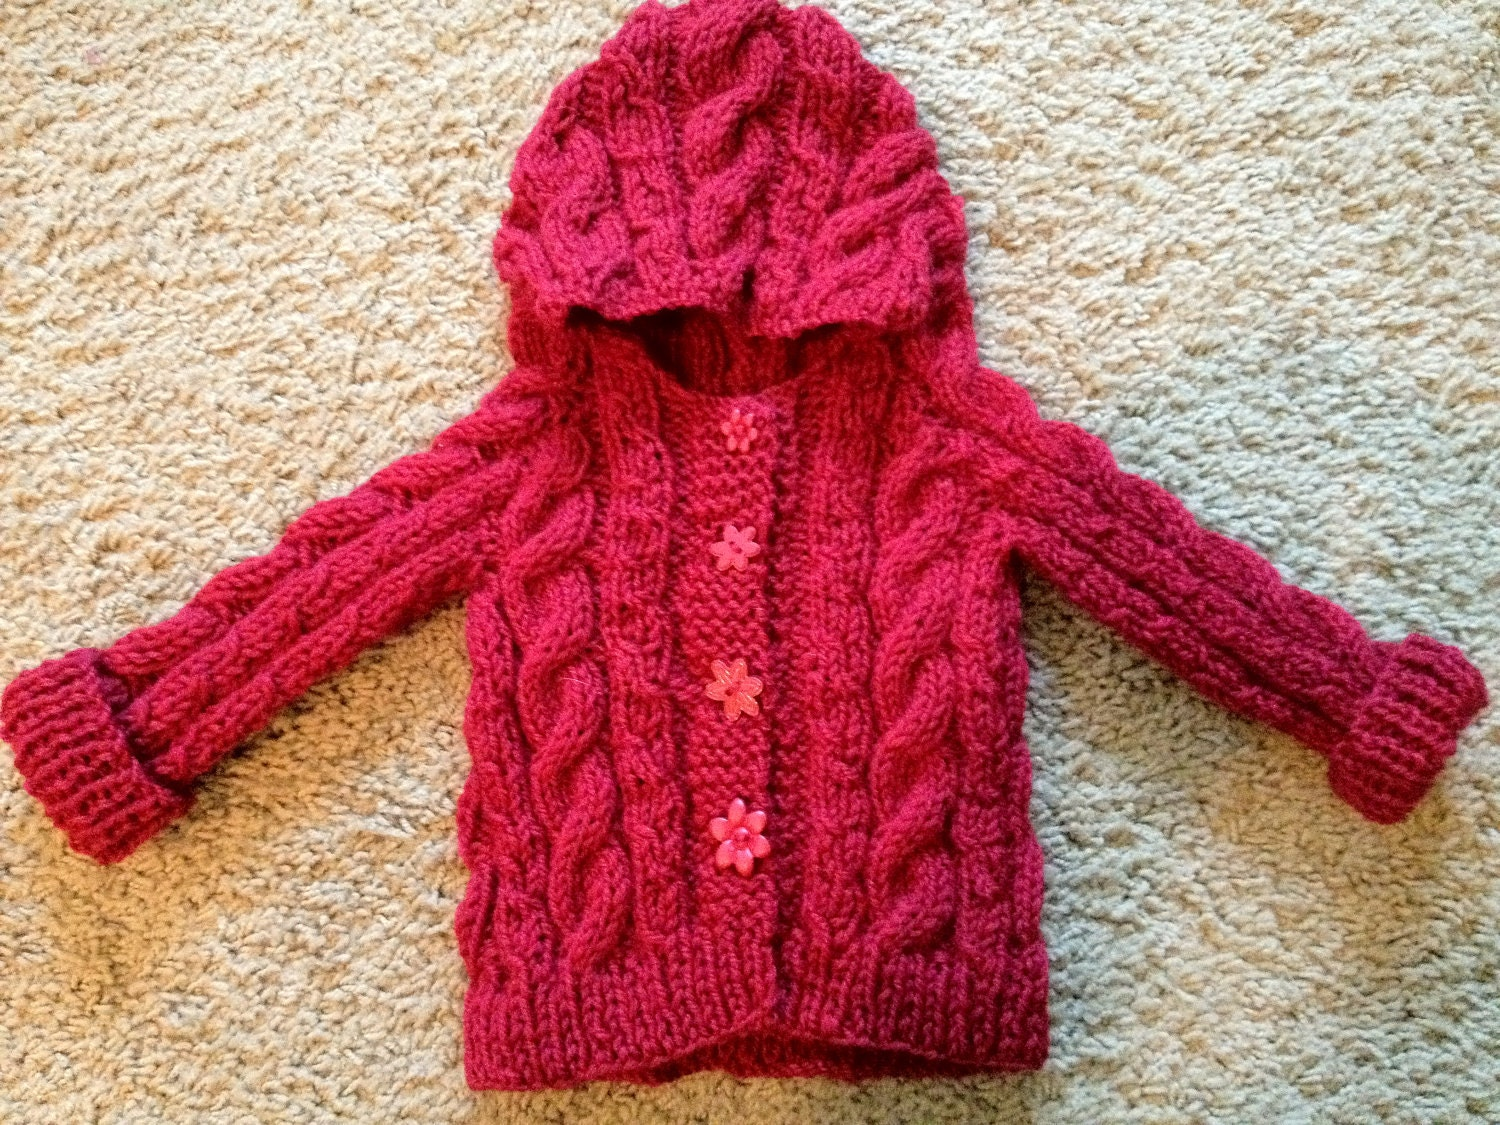 Hooded Cable Knit Baby Sweater made to order 0-12 months